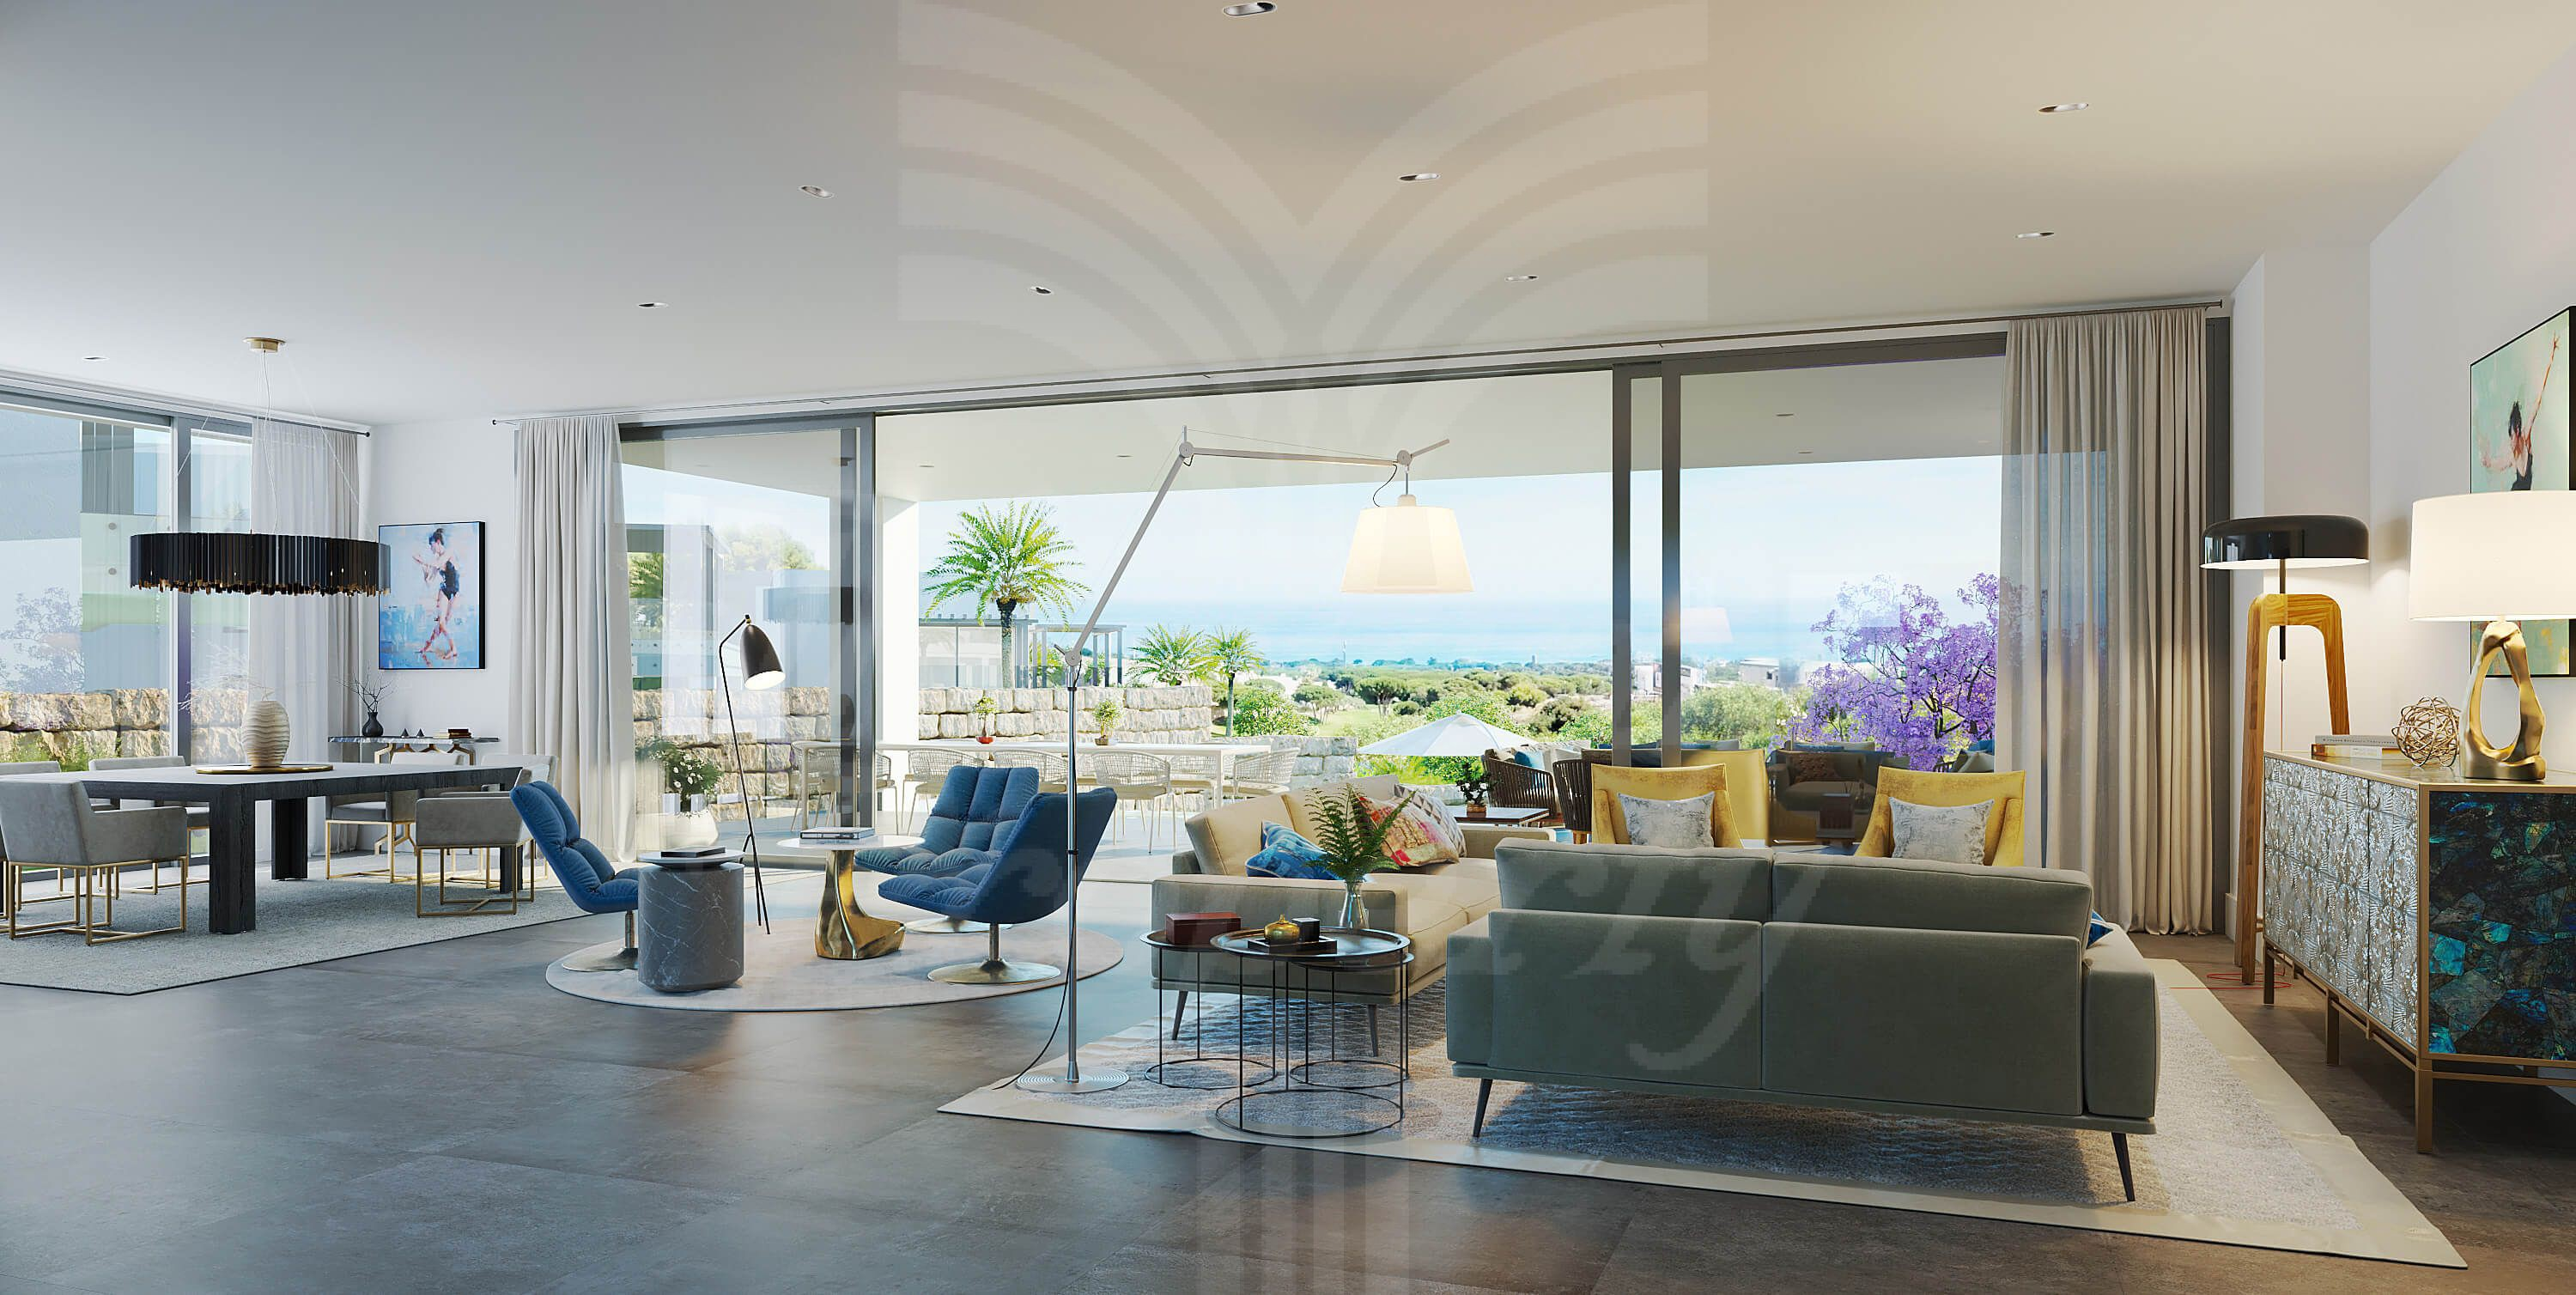 Exclusive villas with sea views in Marbella